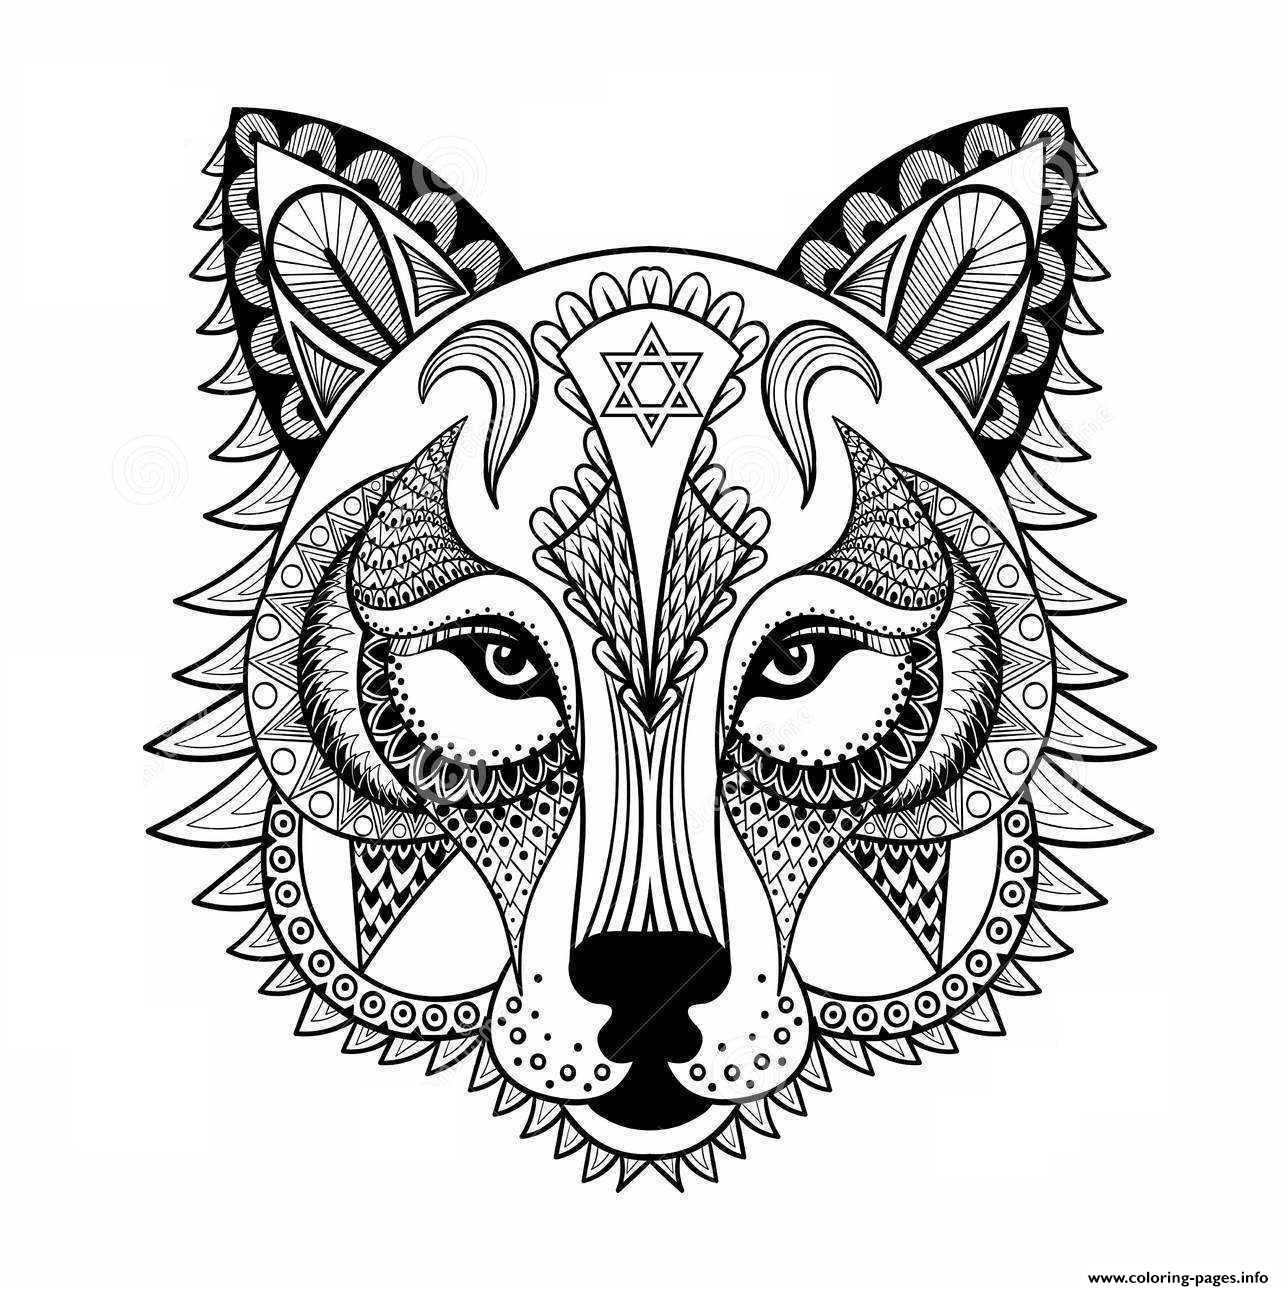 wolf for adult anti stress coloring pages - Wolf Coloring Pages For Adults